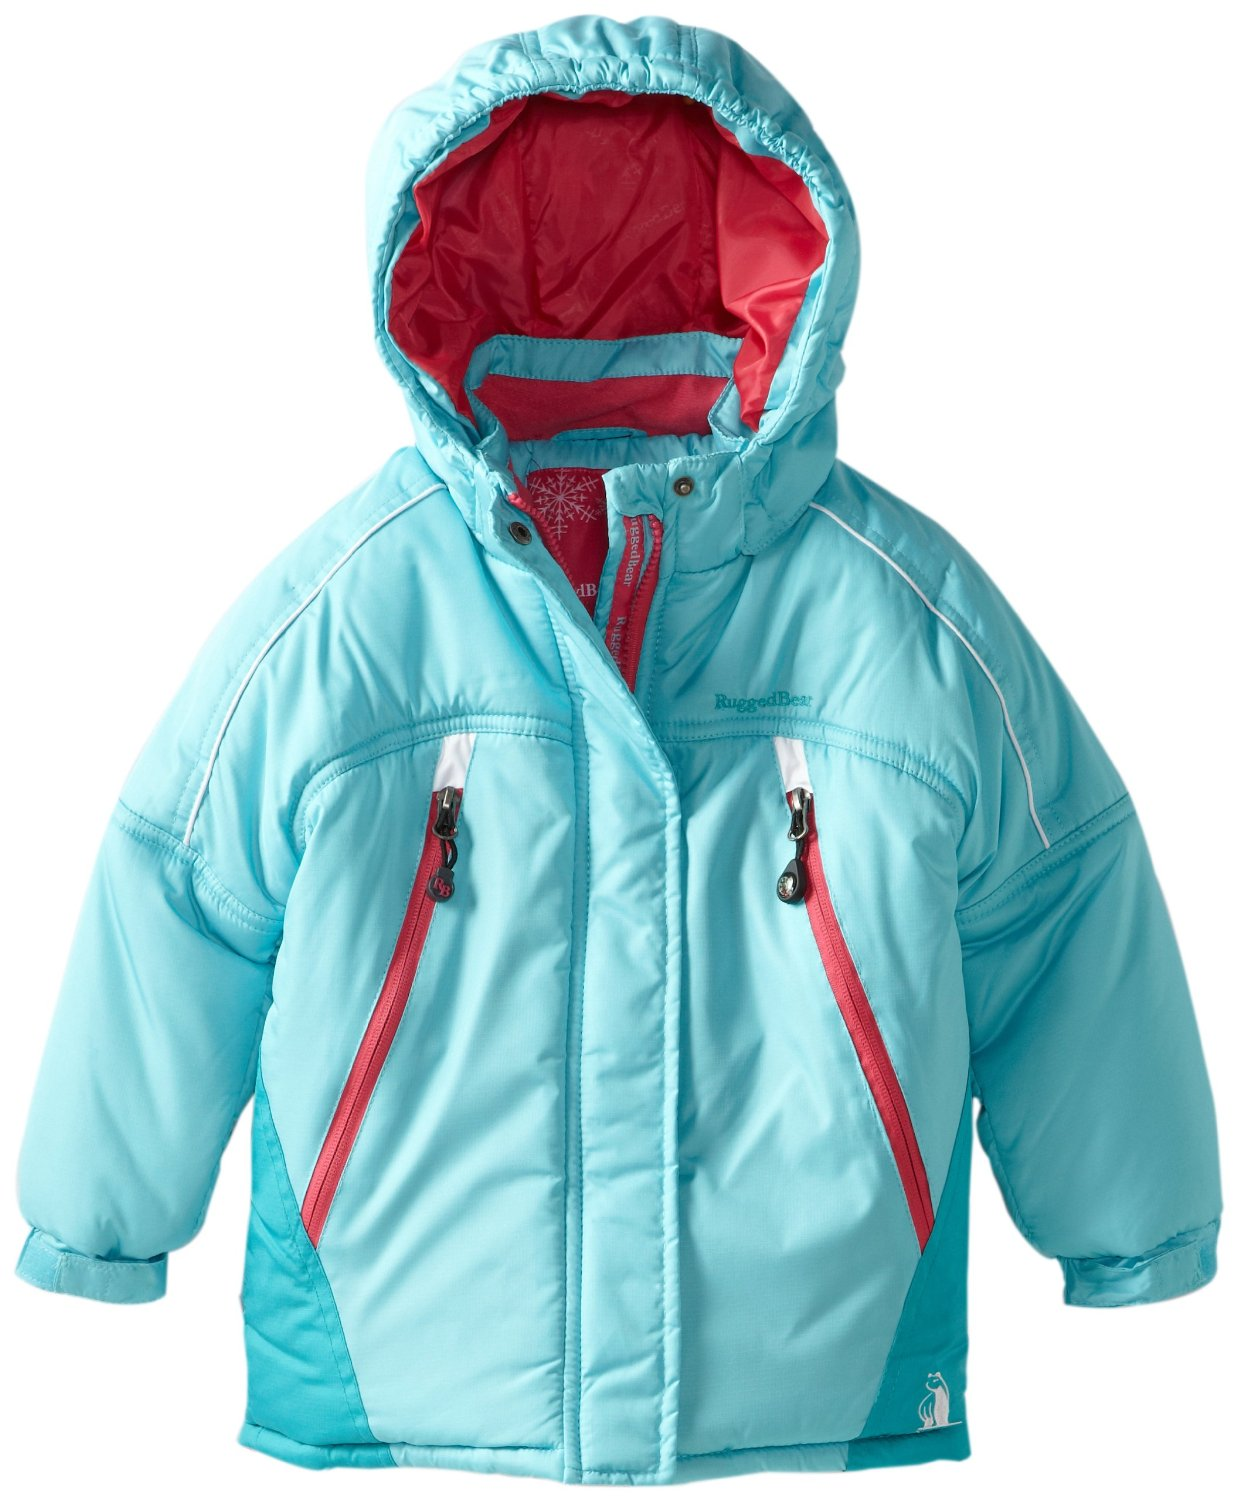 Rugged Bear Infant Girls Color Block Blue Snow Ski Jacket / Coat 12M 18M 24M at Sears.com